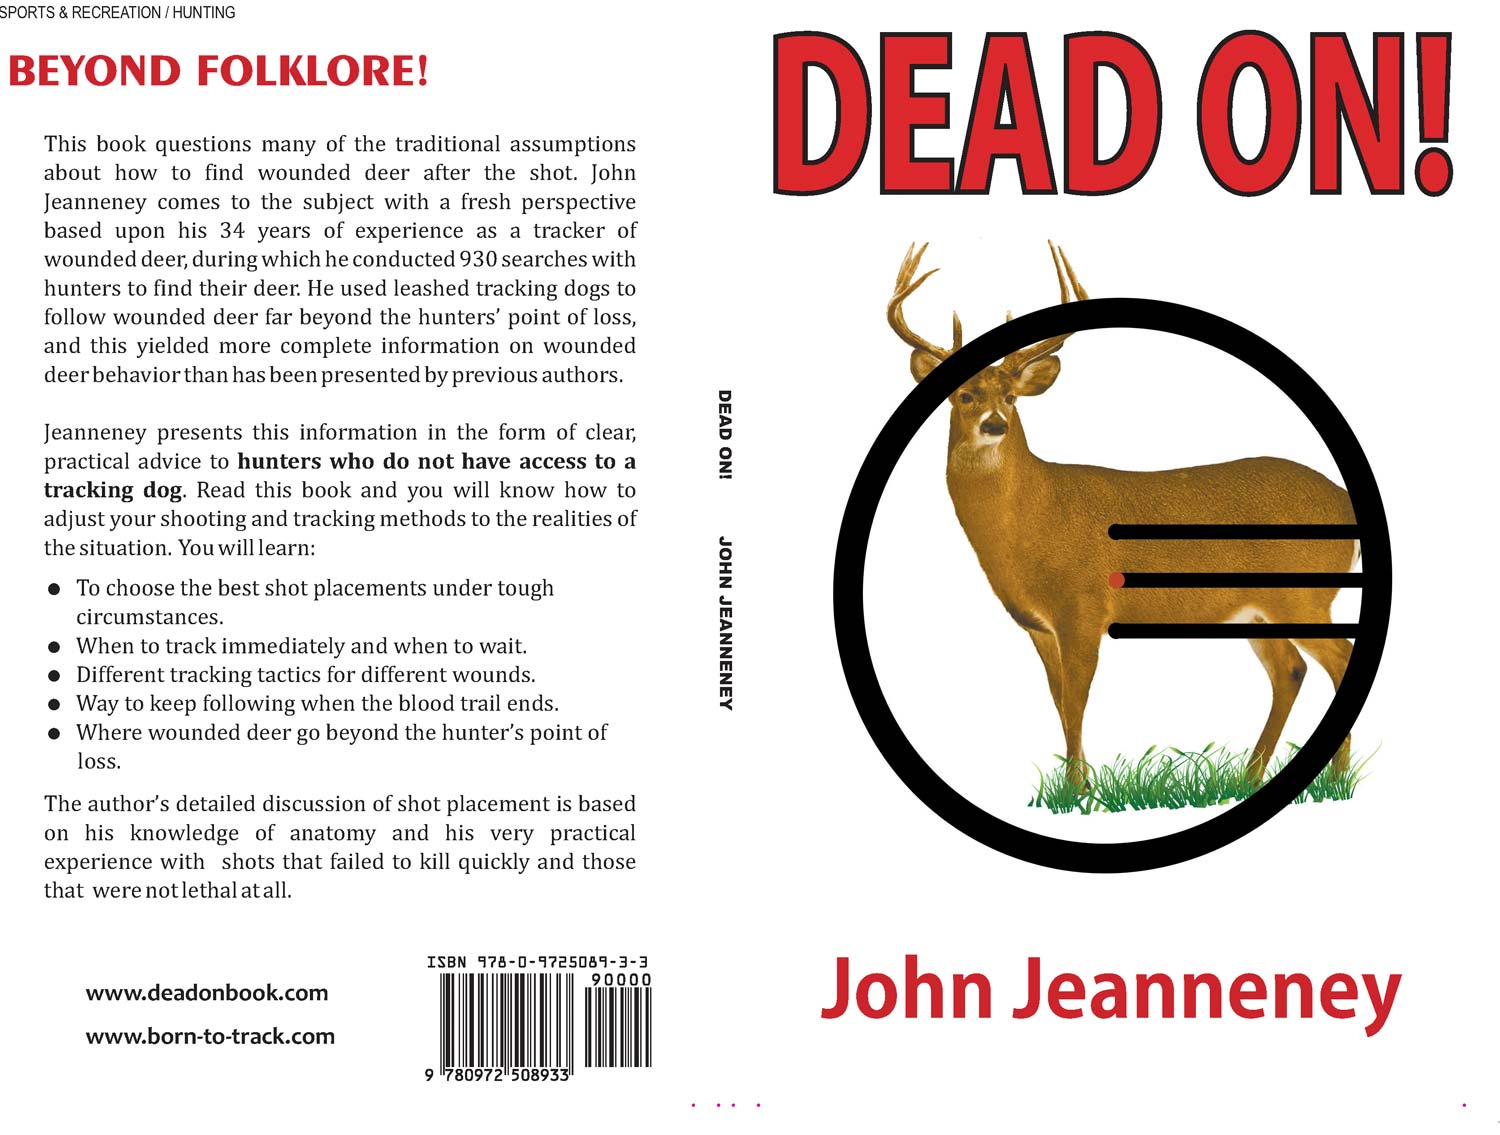 BORN-TO-TRACK BLOG: John\'s book for deer hunters Dead On! gets its ...